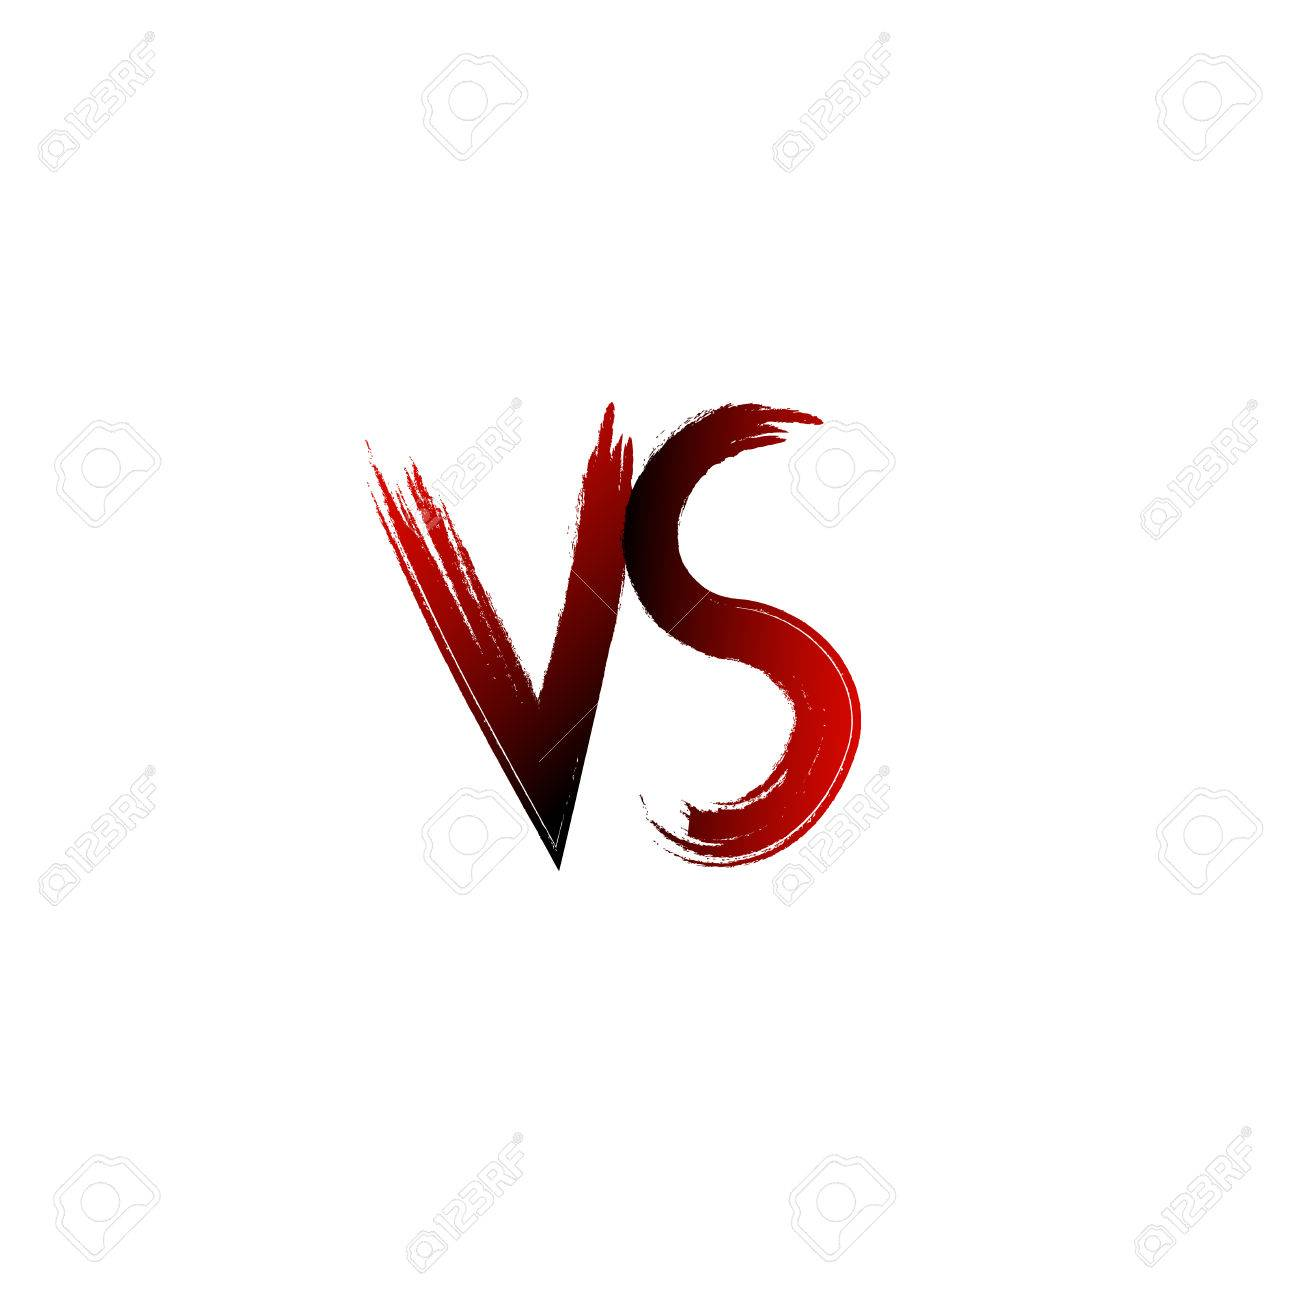 / Vs Vs Logo Stock Photos And Images 123rf